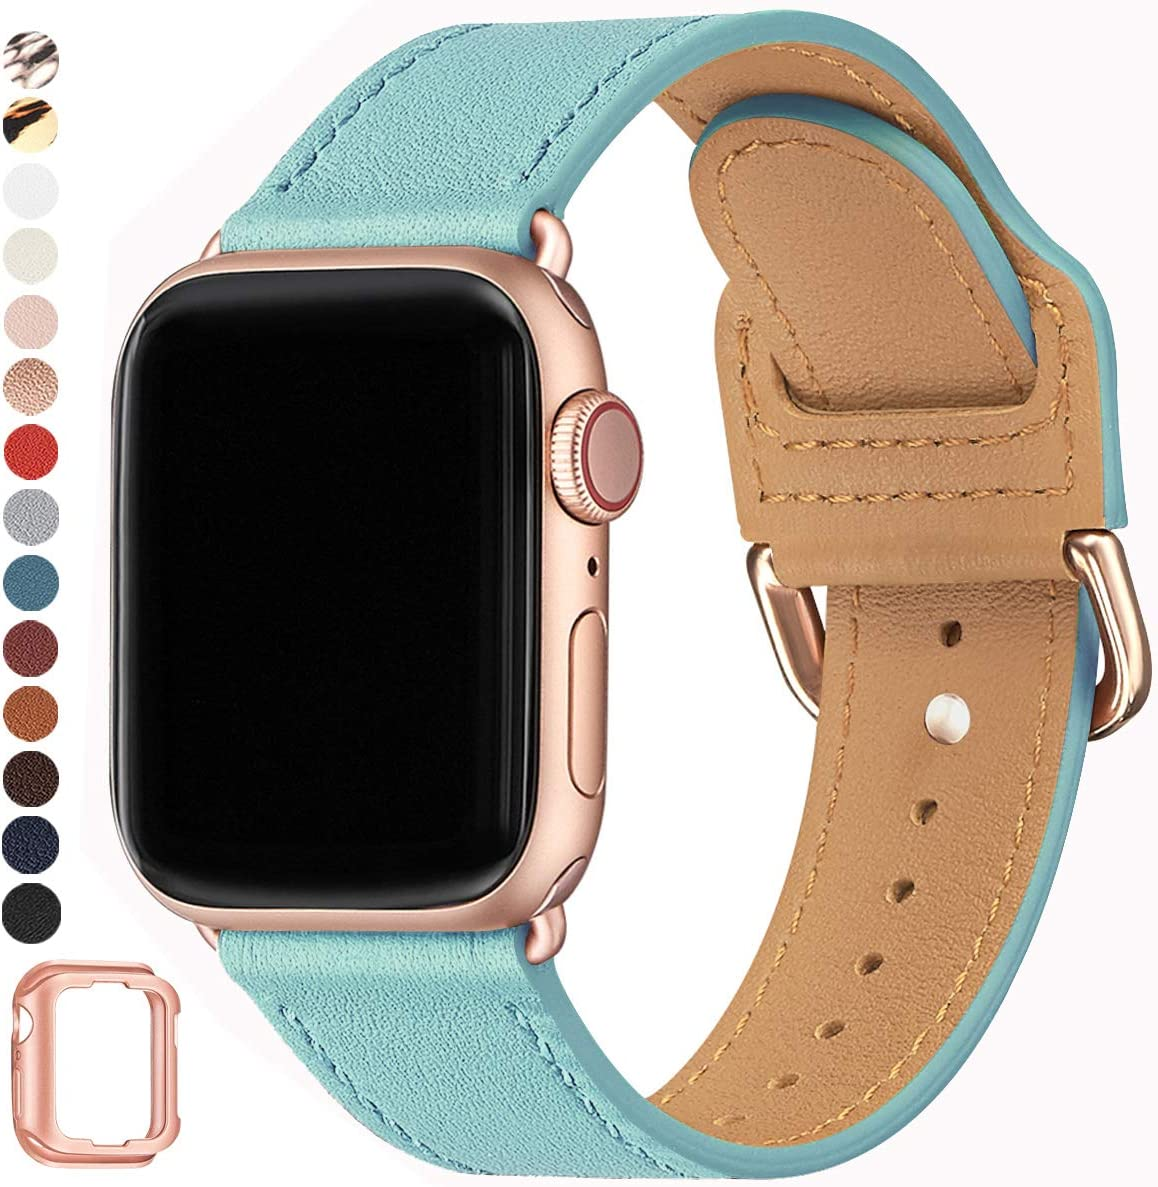 POWER PRIMACY Bands Compatible with Apple Watch Band 38mm 40mm 42mm 44mm, Top Grain Leather Smart Watch Strap Compatible for Men Women iWatch Series 6 5 4 3 2 1,SE (Tiffany Blue/Rosegold, 42mm 44mm)